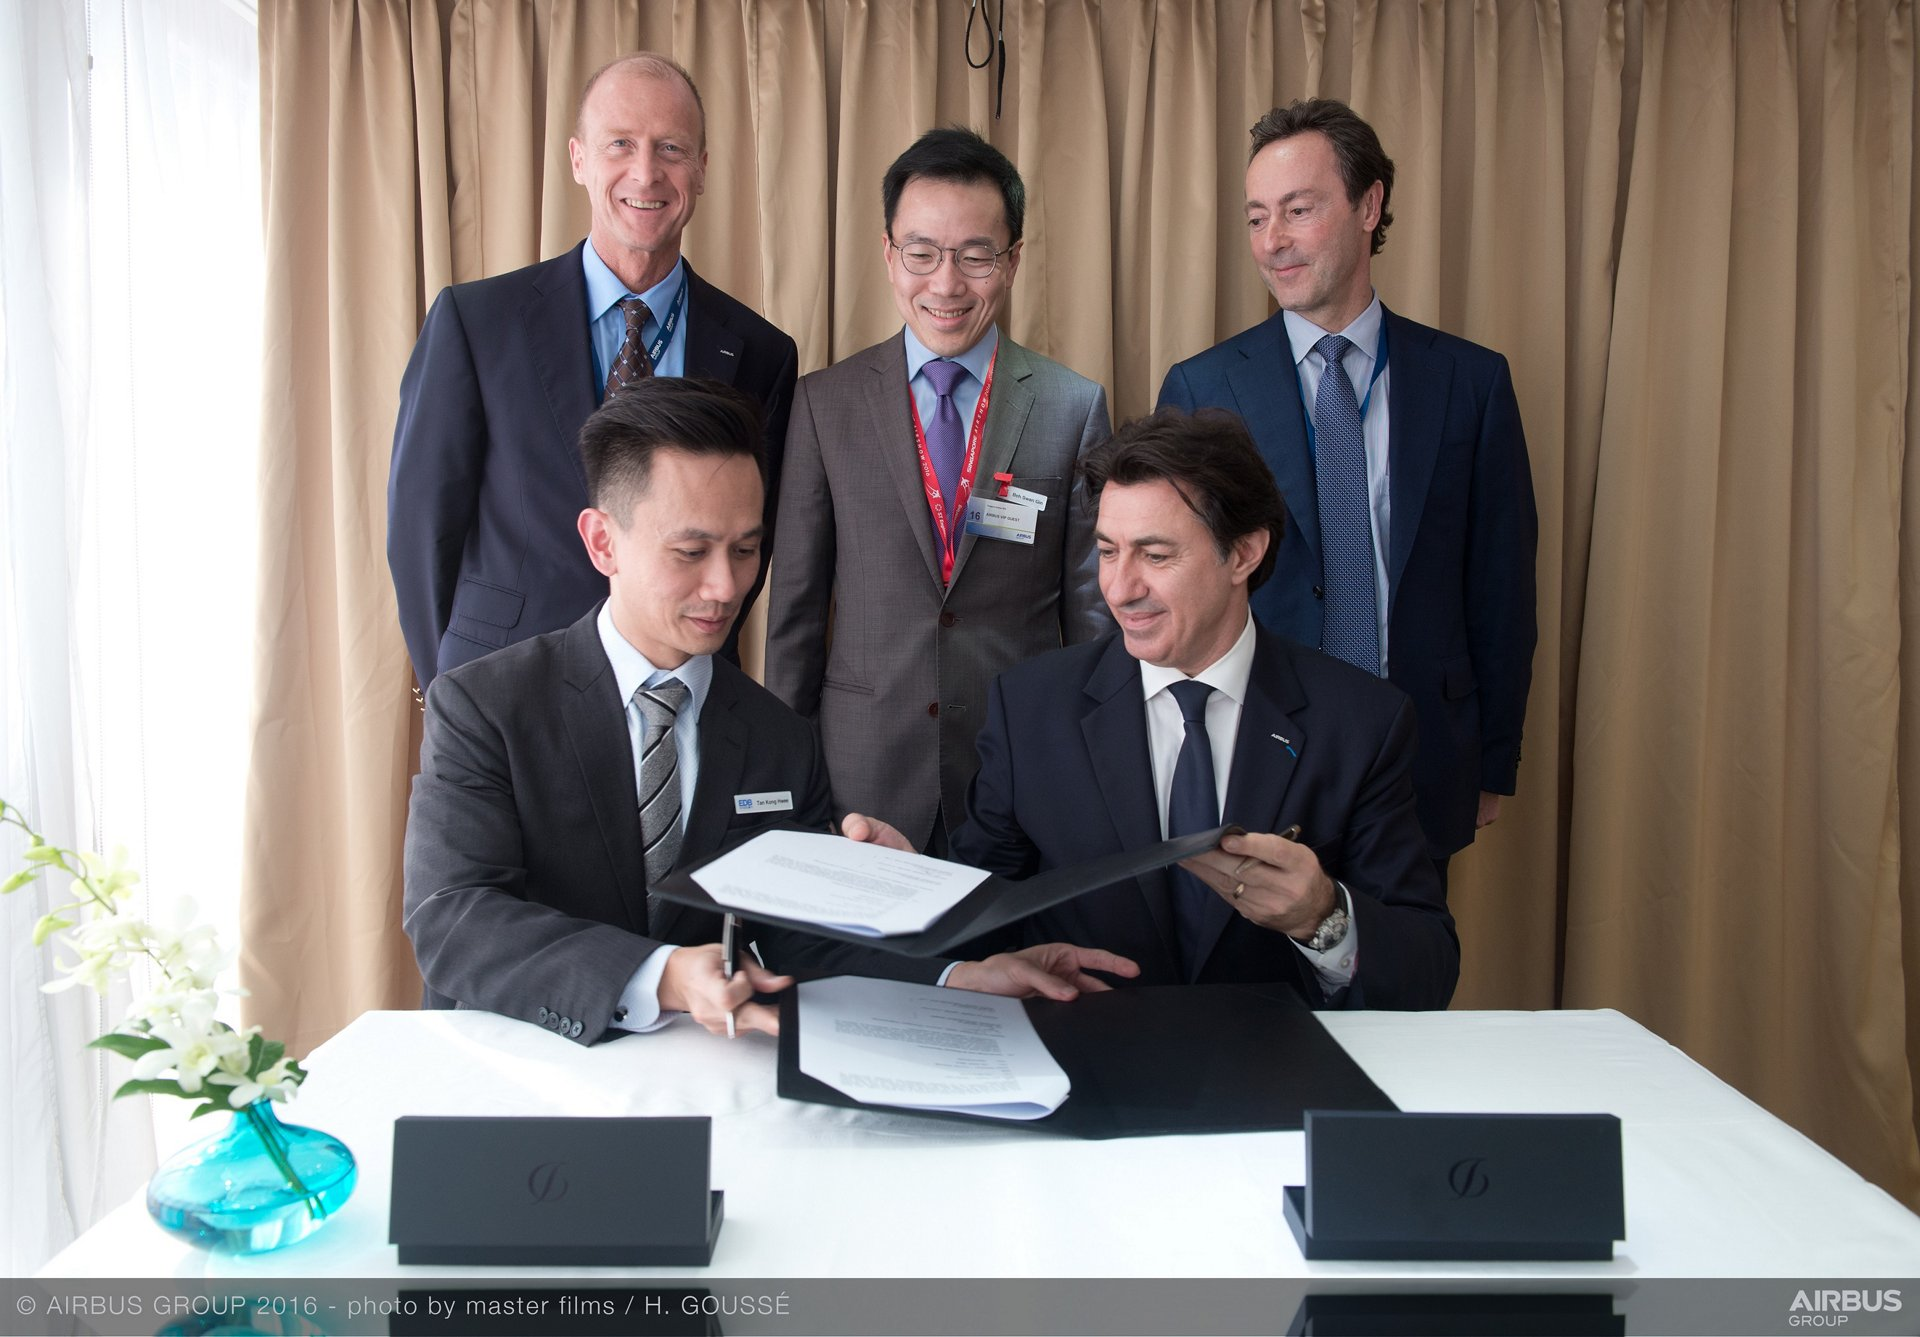 Airbus Group signs MOU with Singapore's Economic Development Board (EDB) to develop innovative aircraft maintenance of the future.